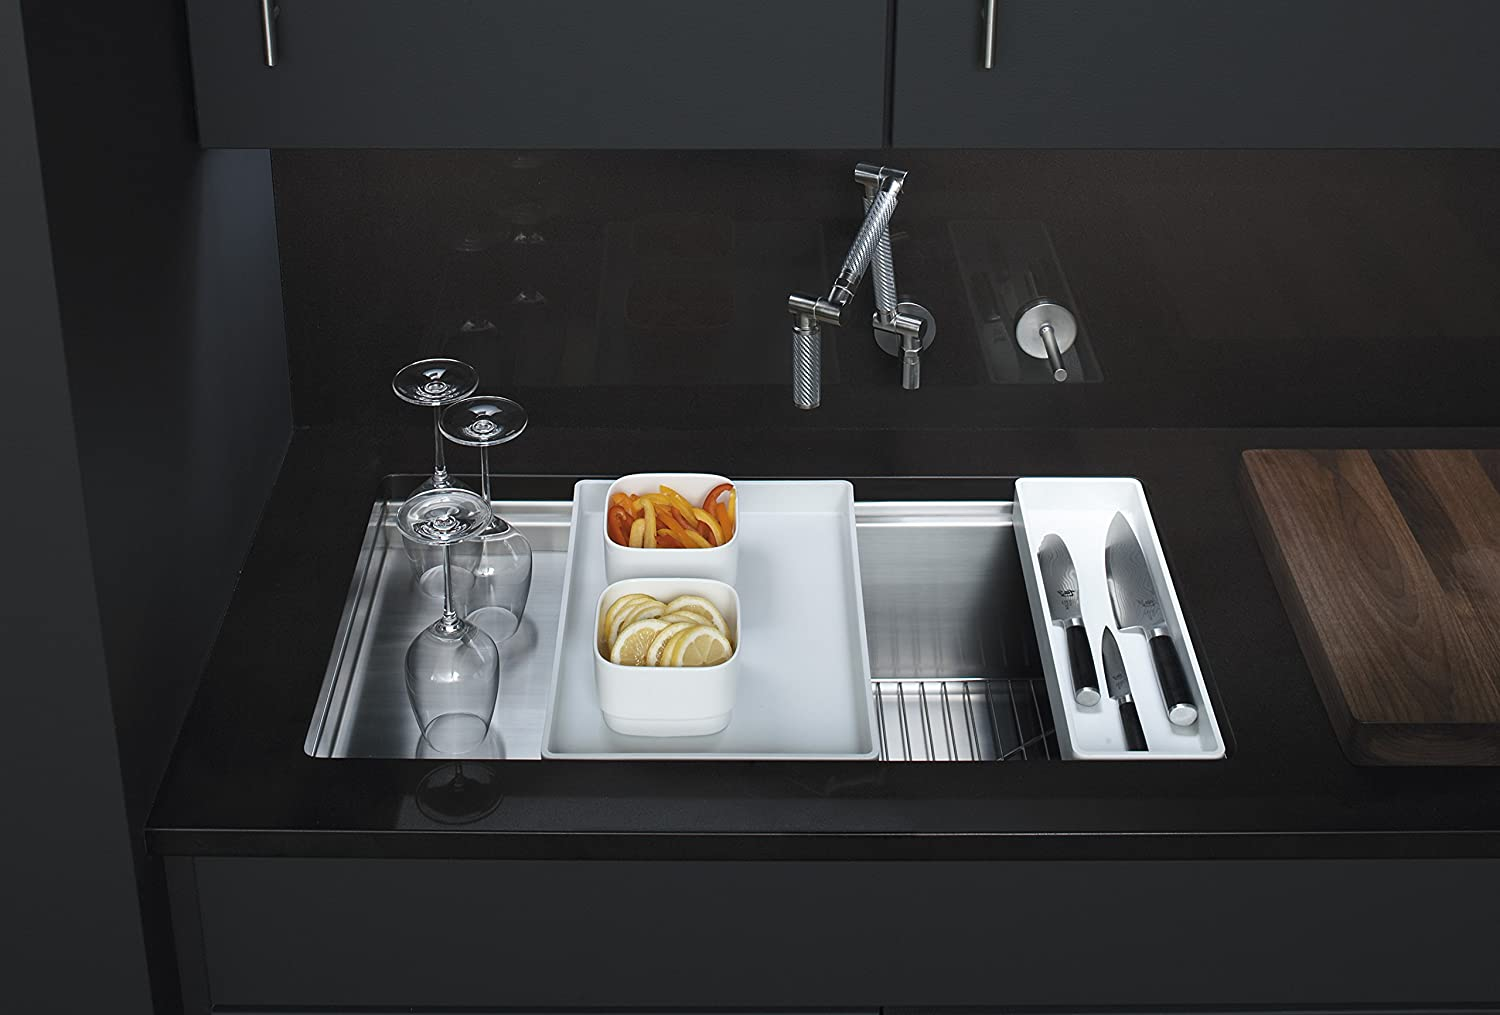 KOHLER K 3760 NA Stages 33 Inch Stainless Steel Kitchen Sink   Single Bowl  Sinks   Amazon.com